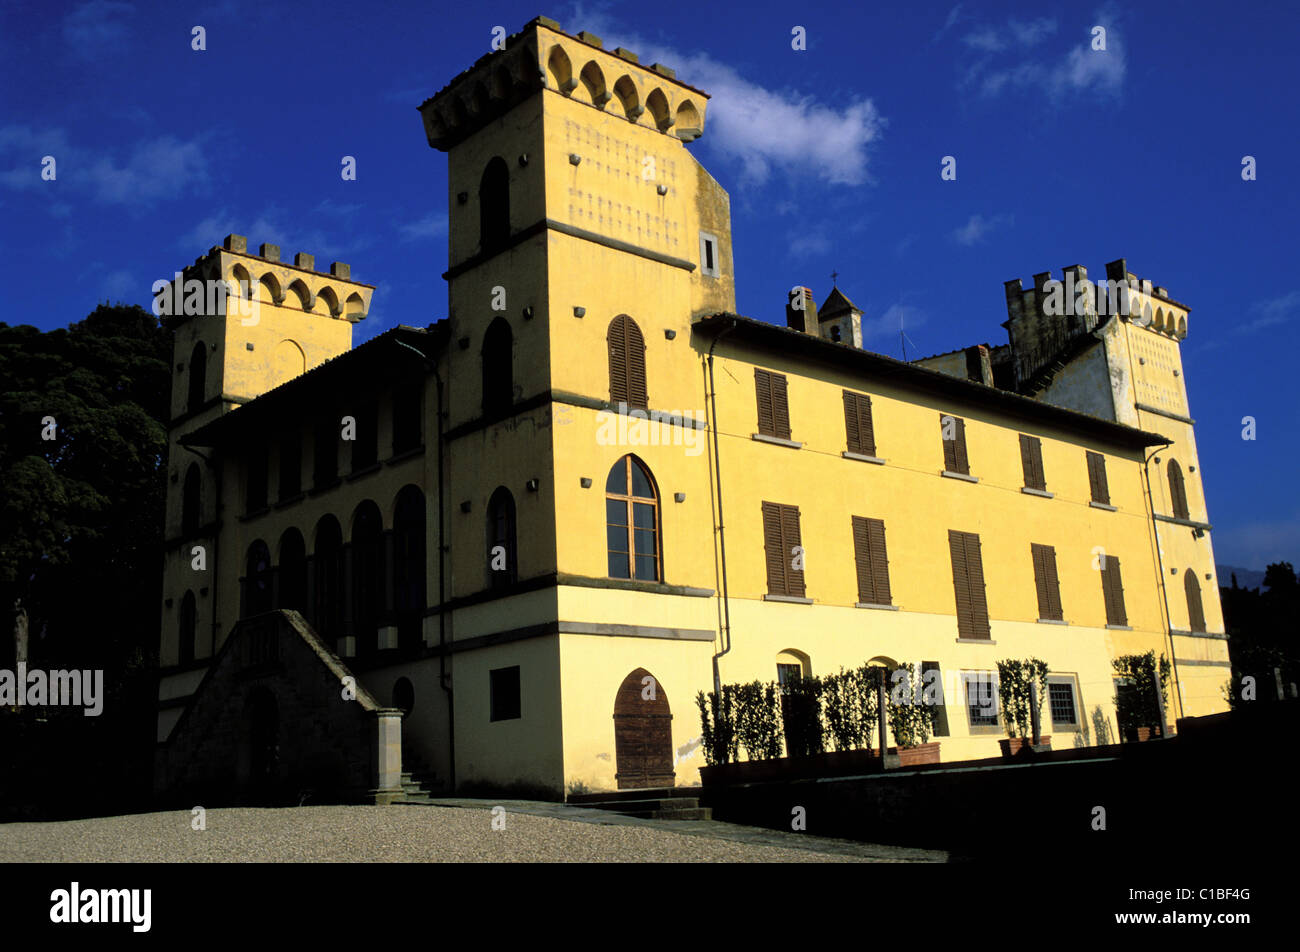 Italy, Tuscany, Sant' Agata, agritourism (farmhouse) Villa I Bonsi on the slopes of the Pratomagno - Stock Image